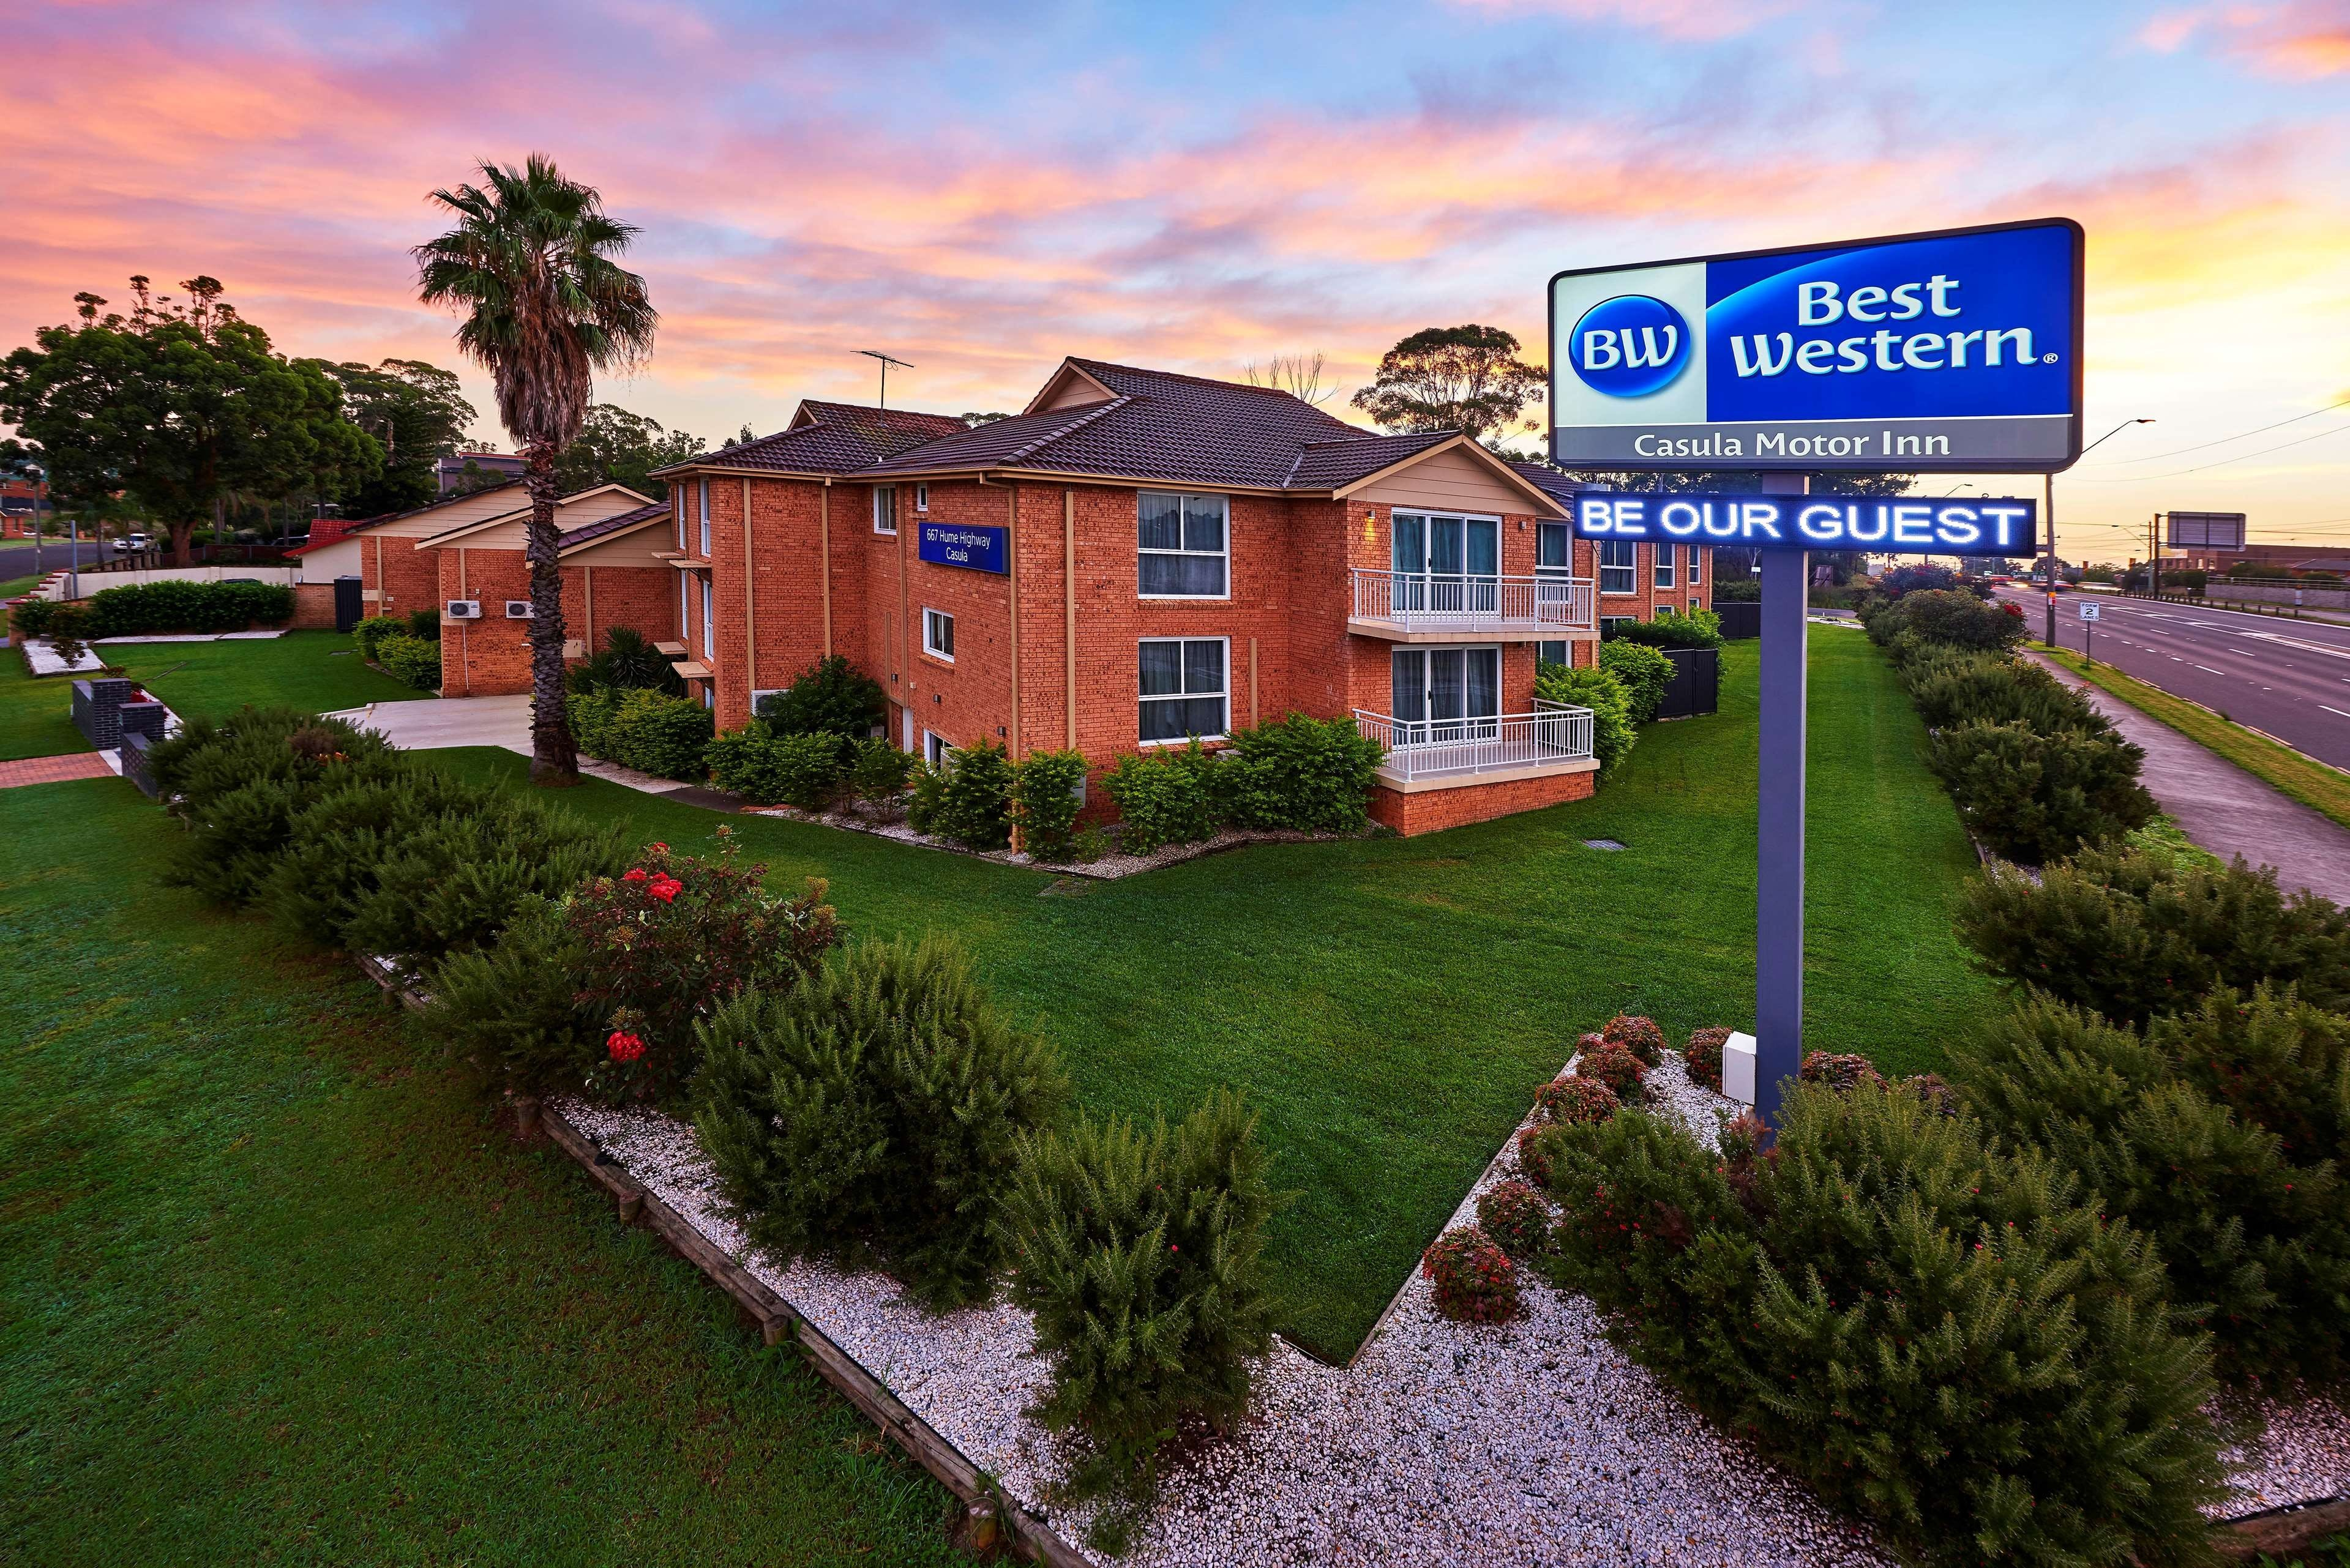 Best Western Casula Motor Inn - Accommodation in Surfers Paradise